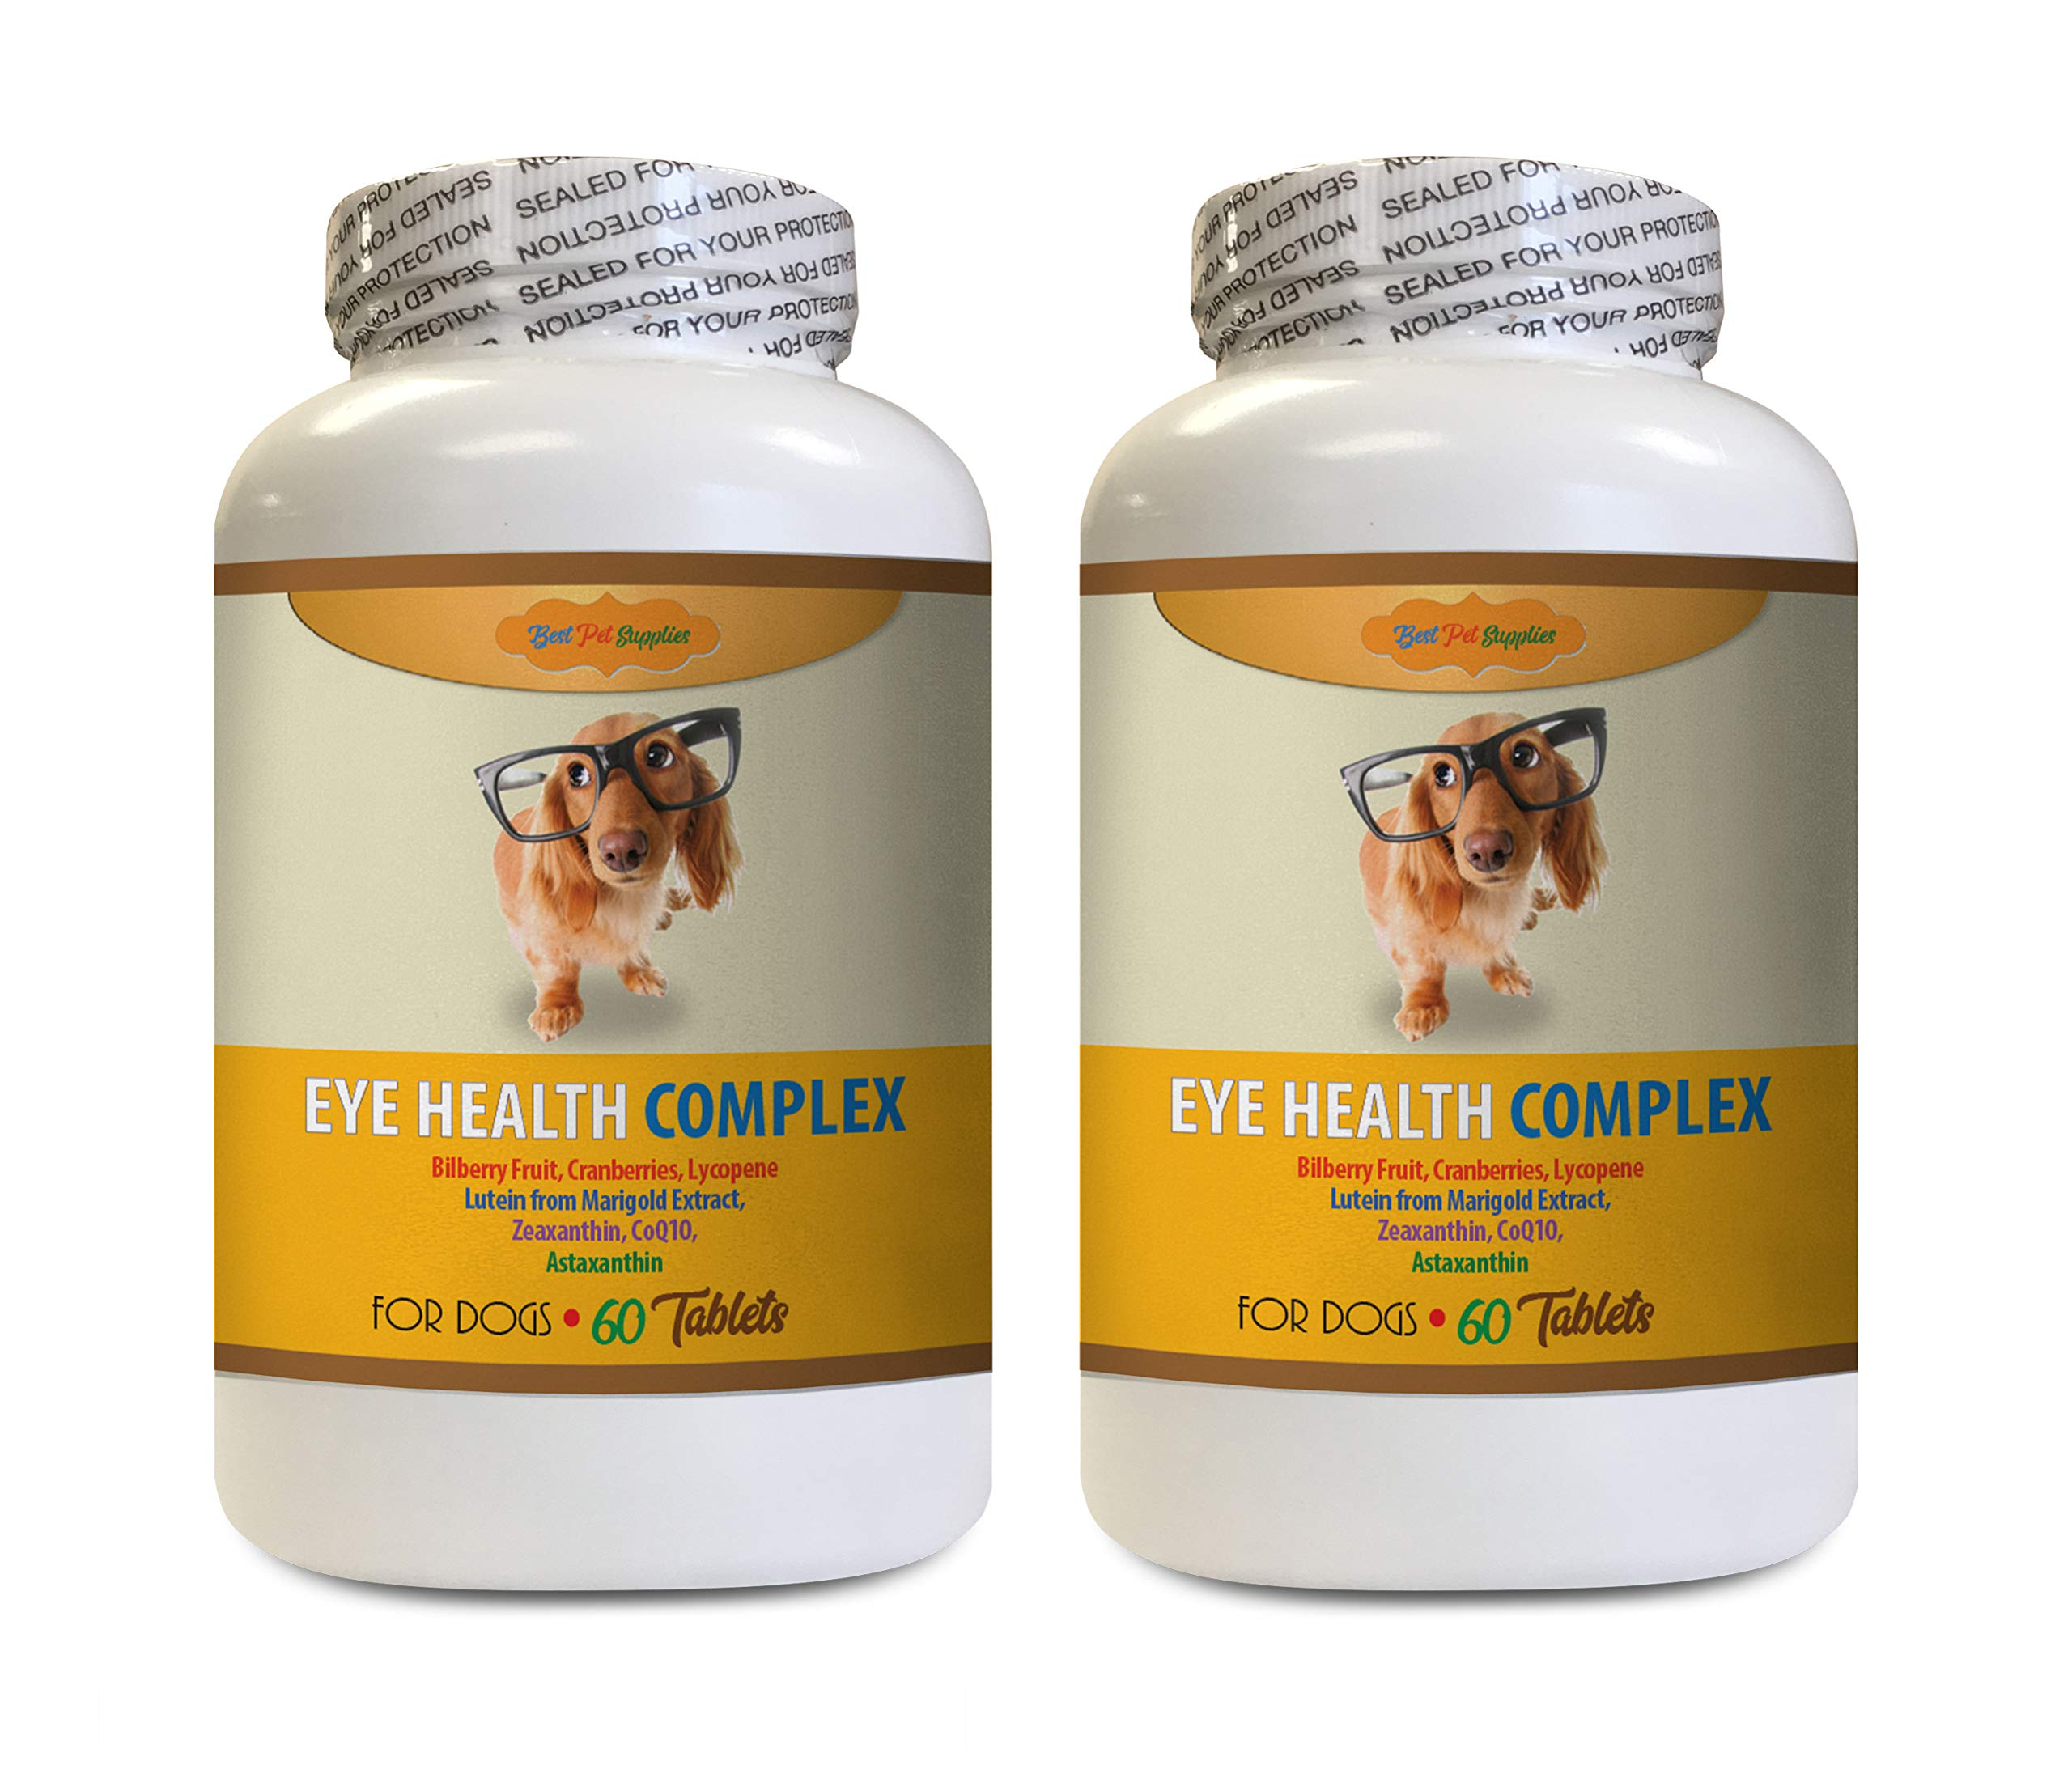 Dog Vision - Dog Eye Health Complex - Immune System Booster - Premium Powerful Ingredients - Best VISON Care - Bilberry for Dogs - 120 Tablets (2 Bottles) by BEST PET SUPPLIES LLC